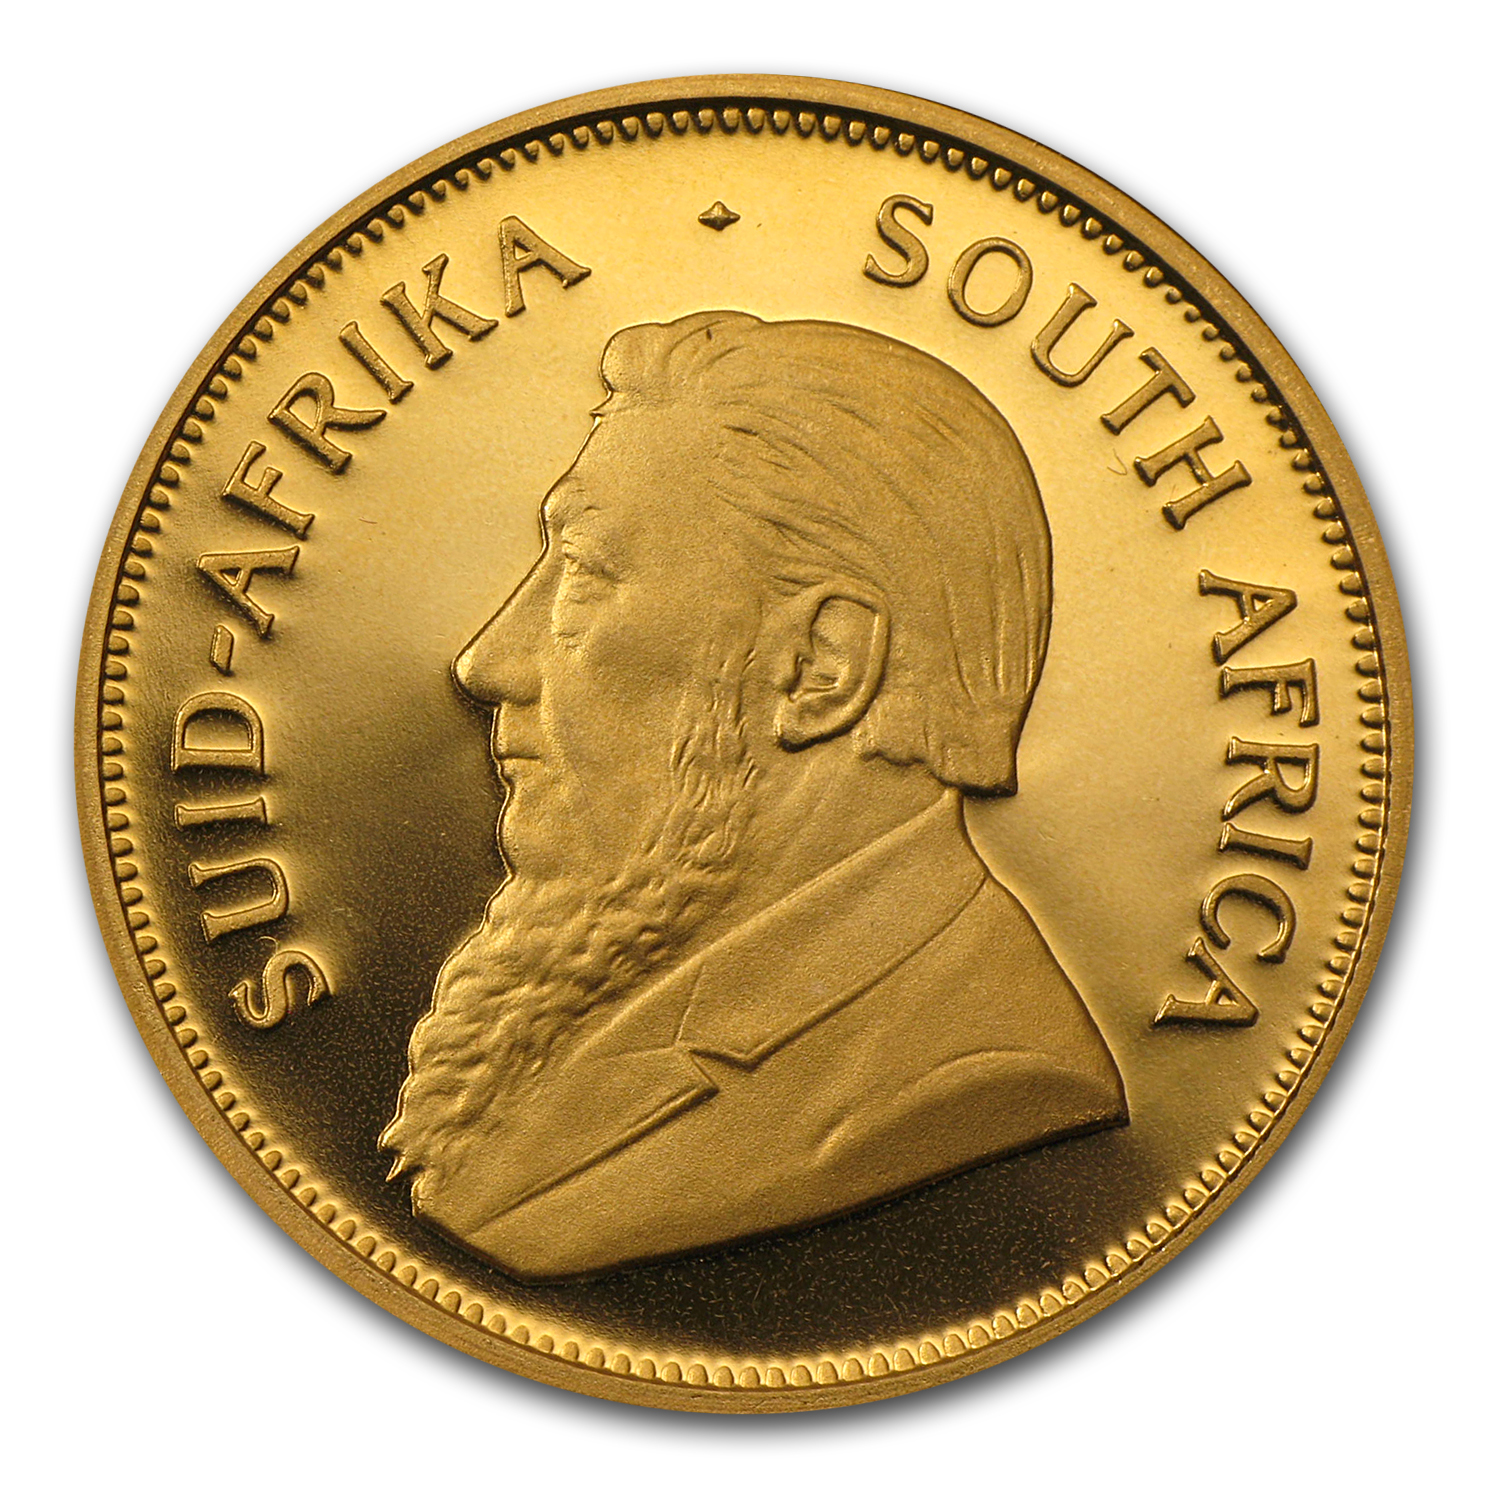 1993 1 oz Gold South African Krugerrand (Proof)